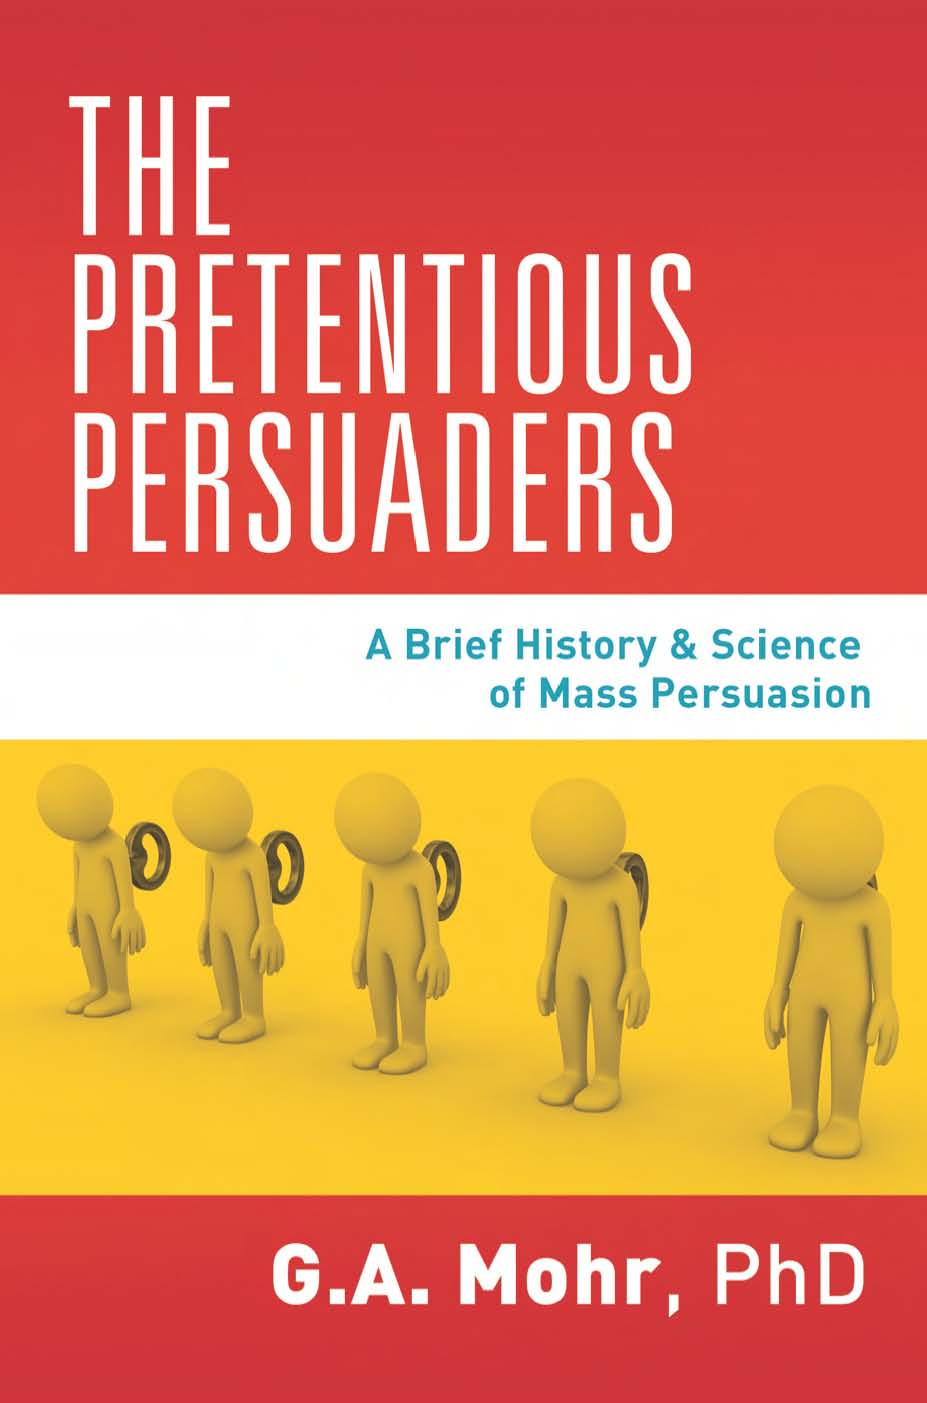 Pretentious Persuader_Cropped_06_11_11.jpg